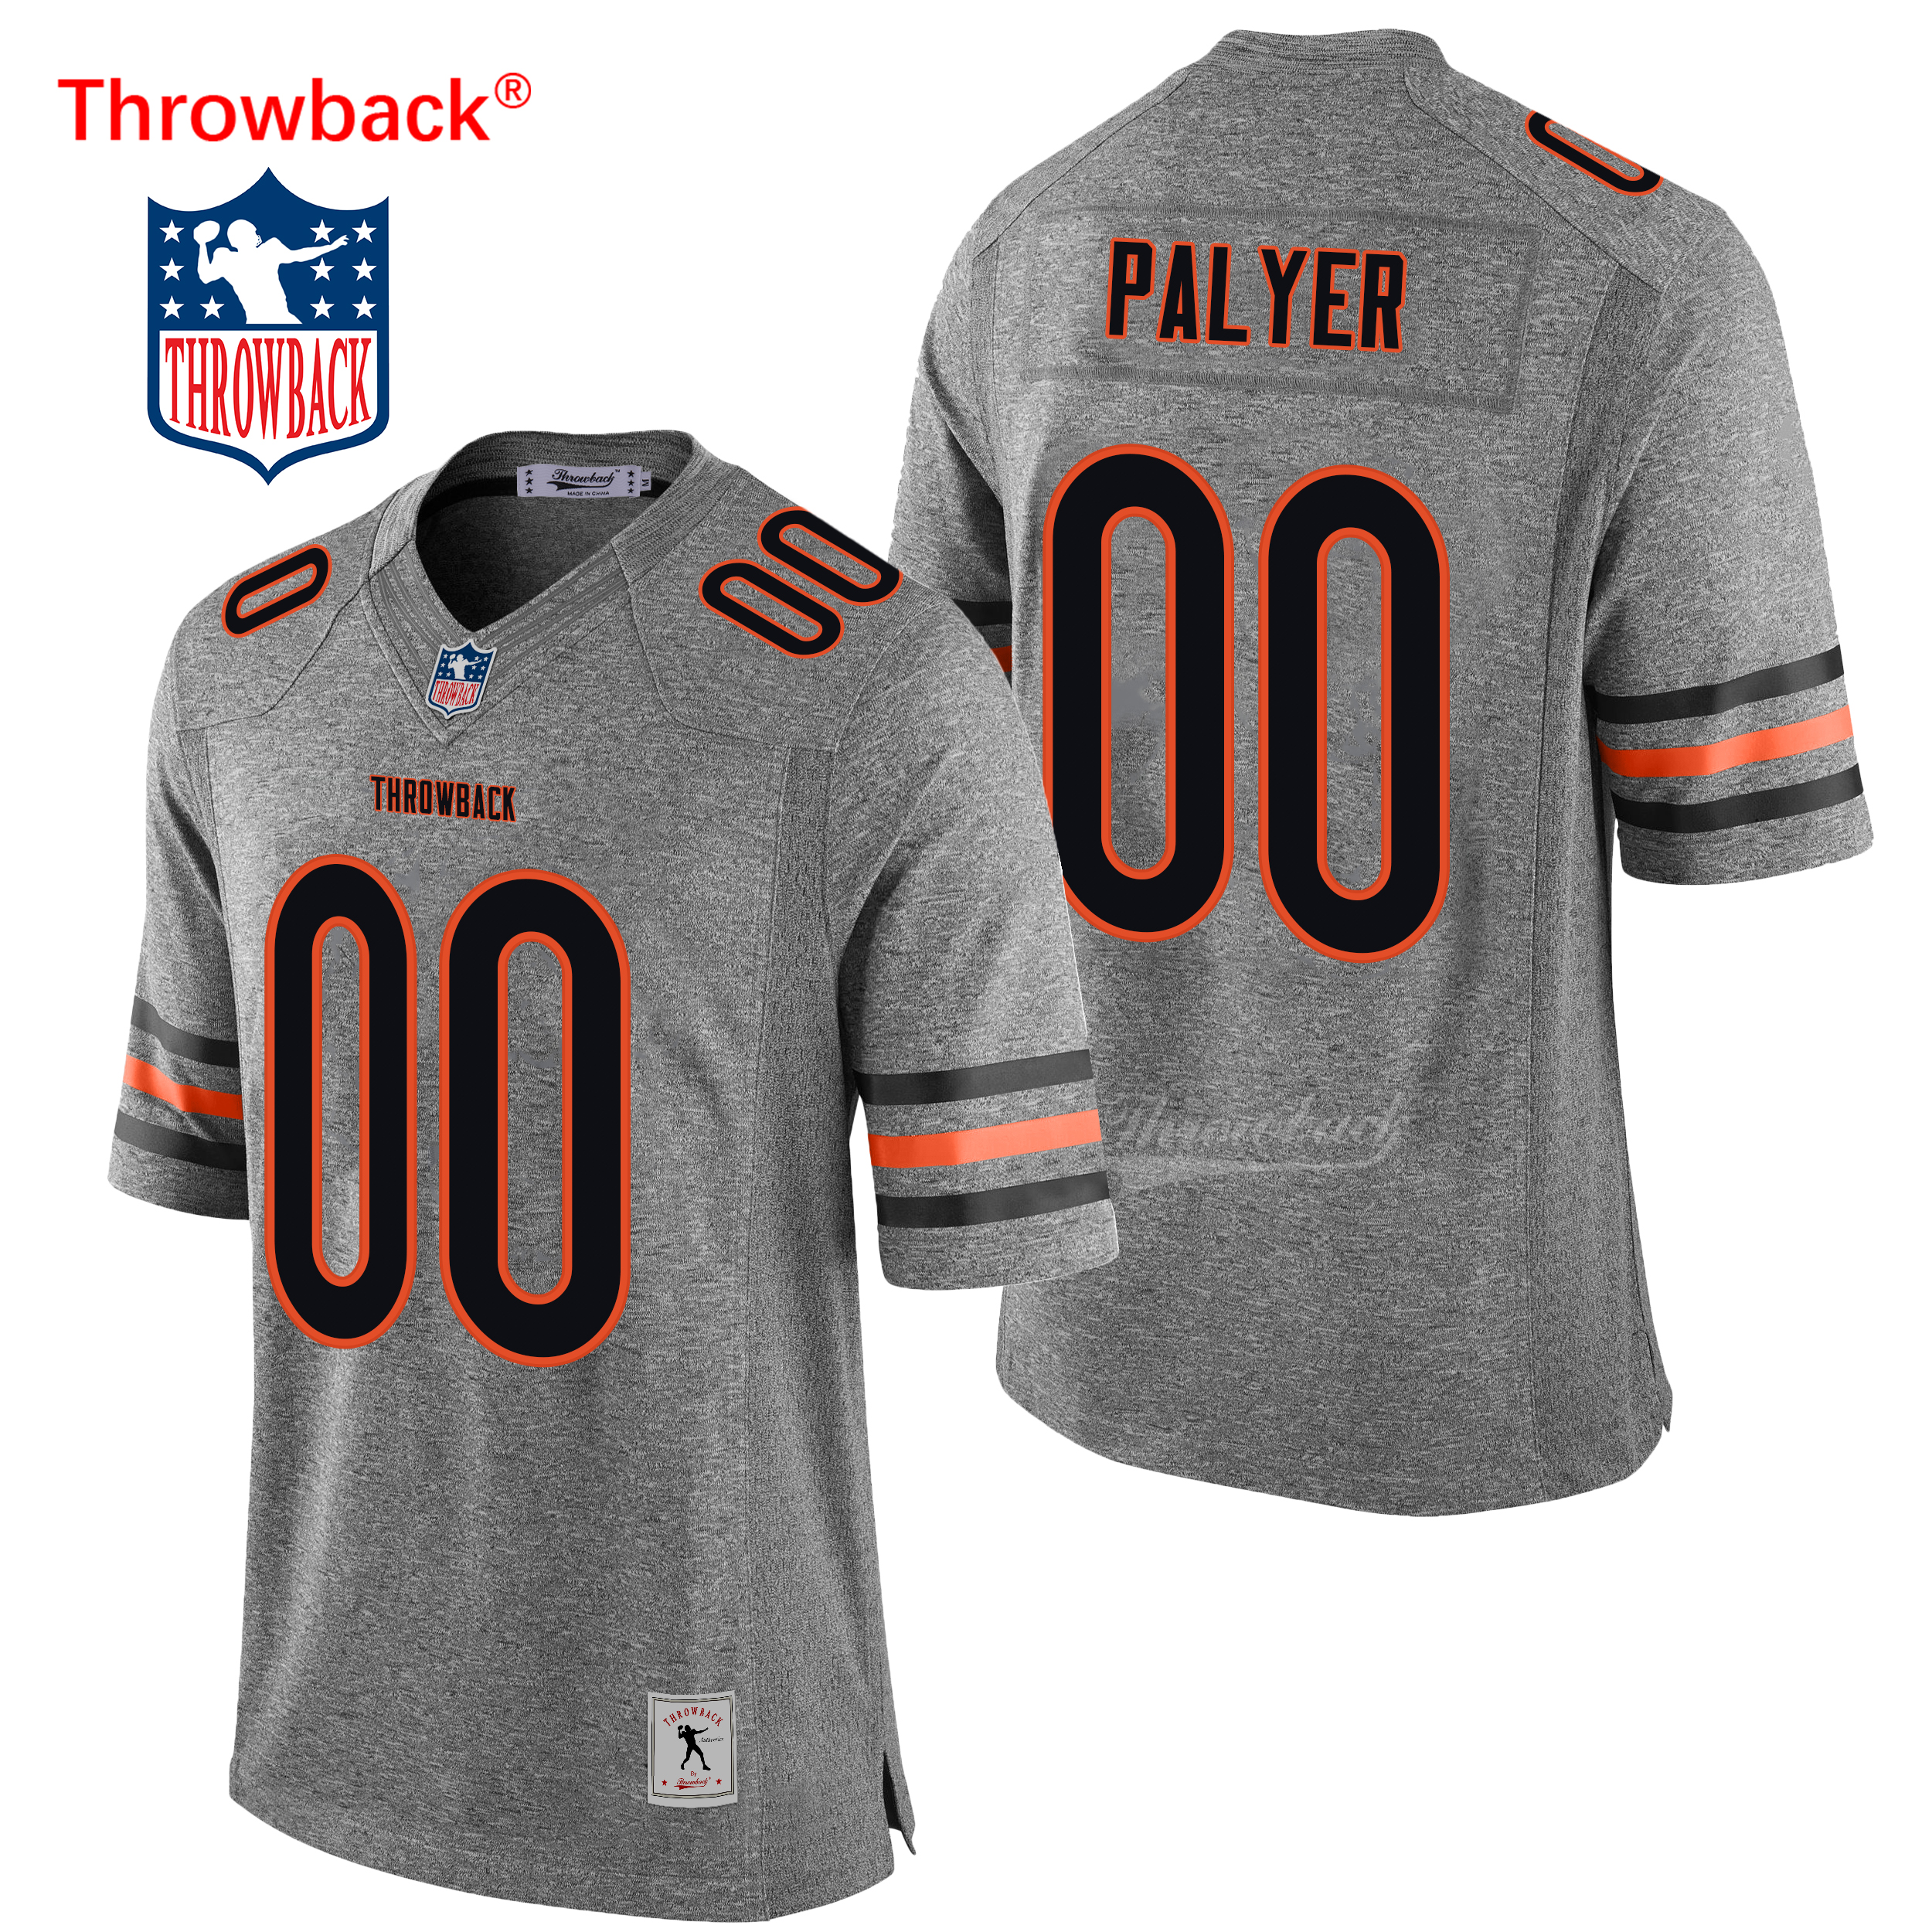 Throwback Jersey Men's Chicago Custom American Football Jerseys Colour Gray Blue Wholesale Size S-4XL image